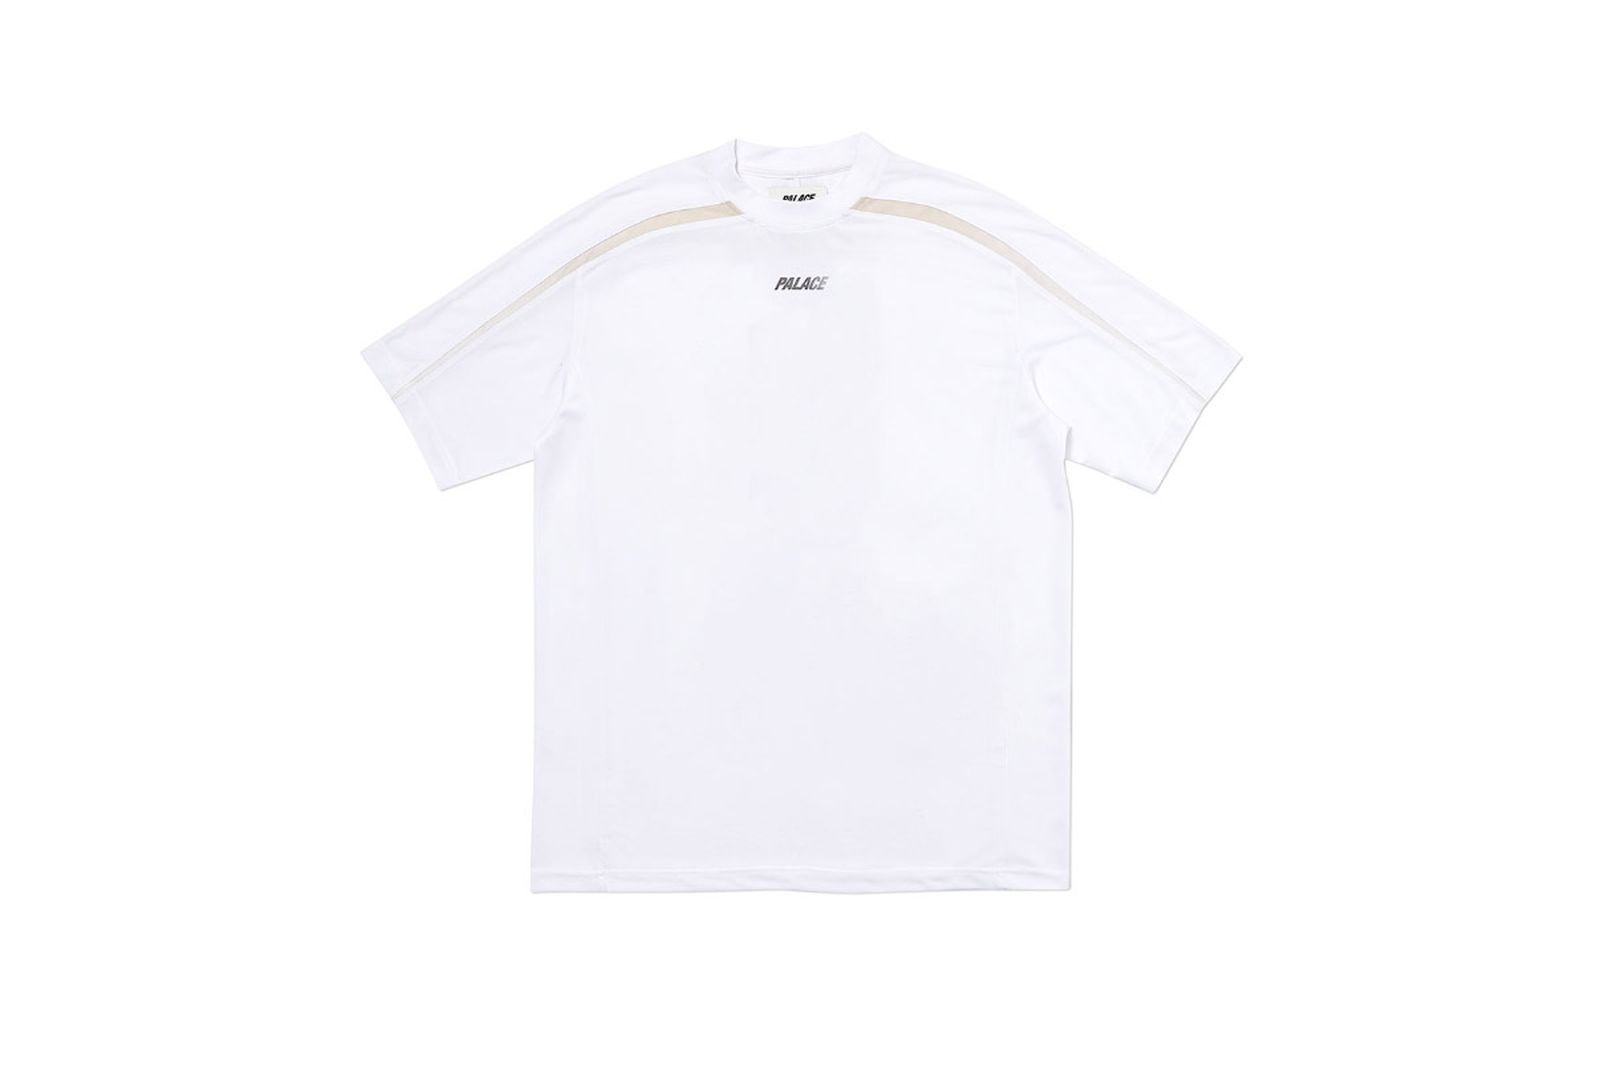 Palace 2019 Autumn T Shirt Stripe Logo white front fw19